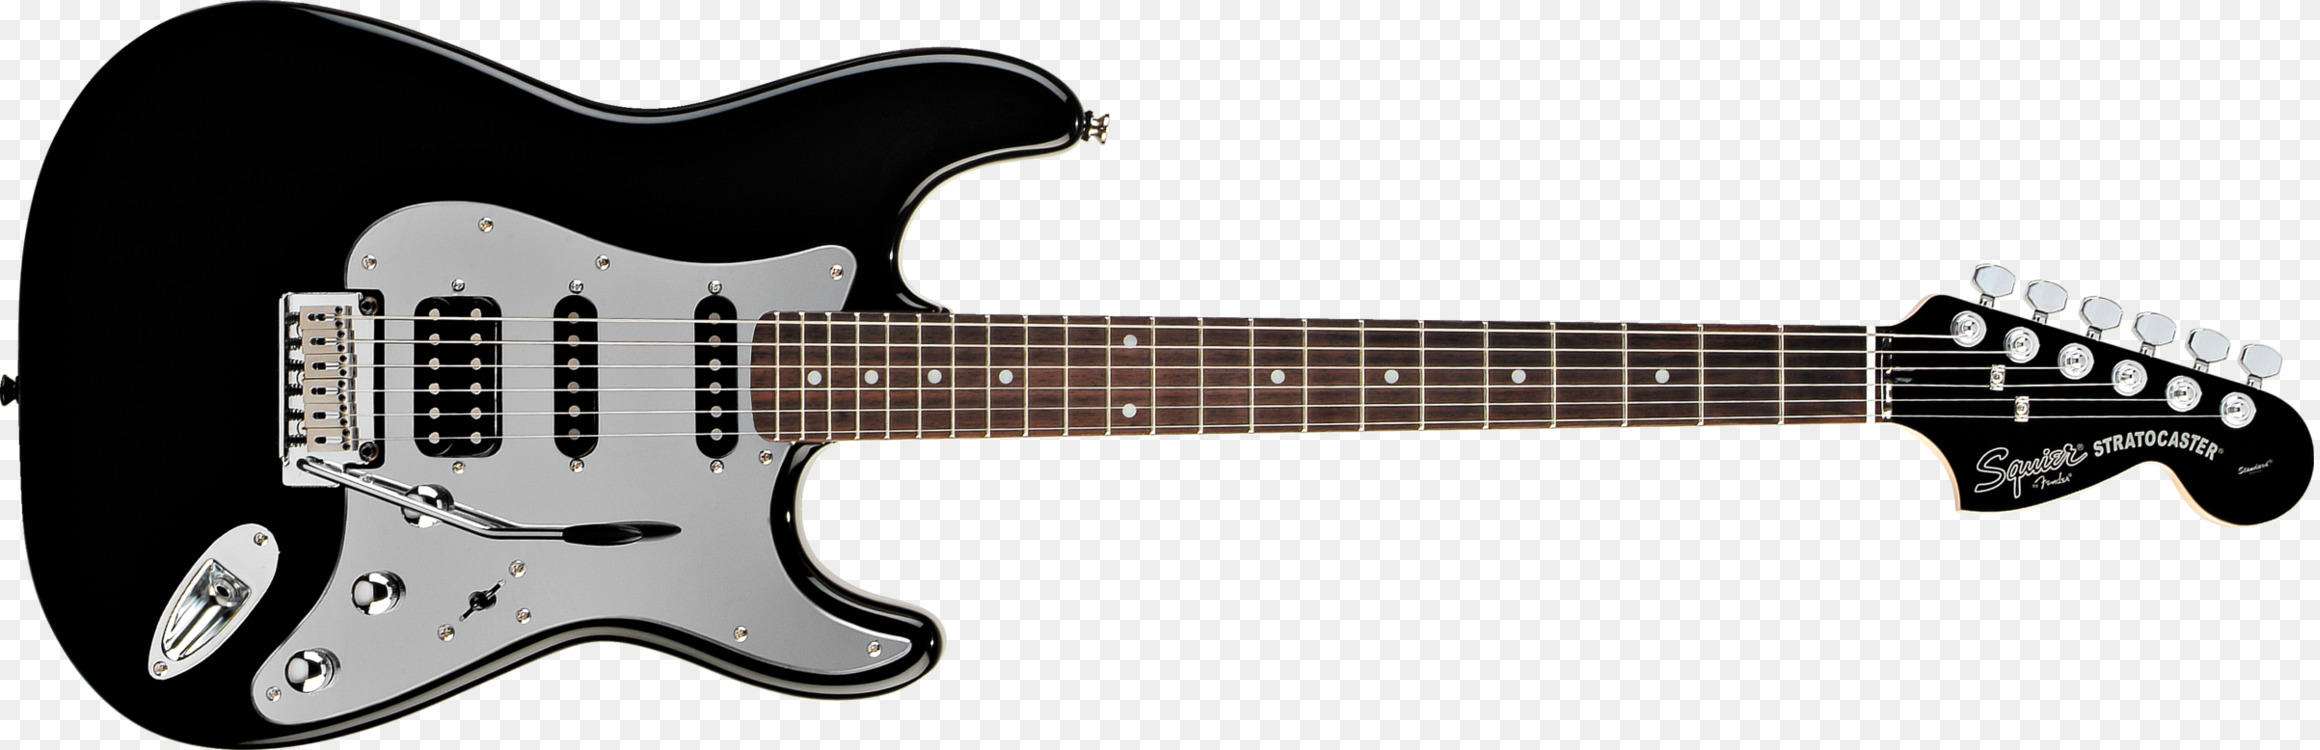 ad0fc18e Fender Stratocaster Squier Fender Musical Instruments Corporation Electric  guitar